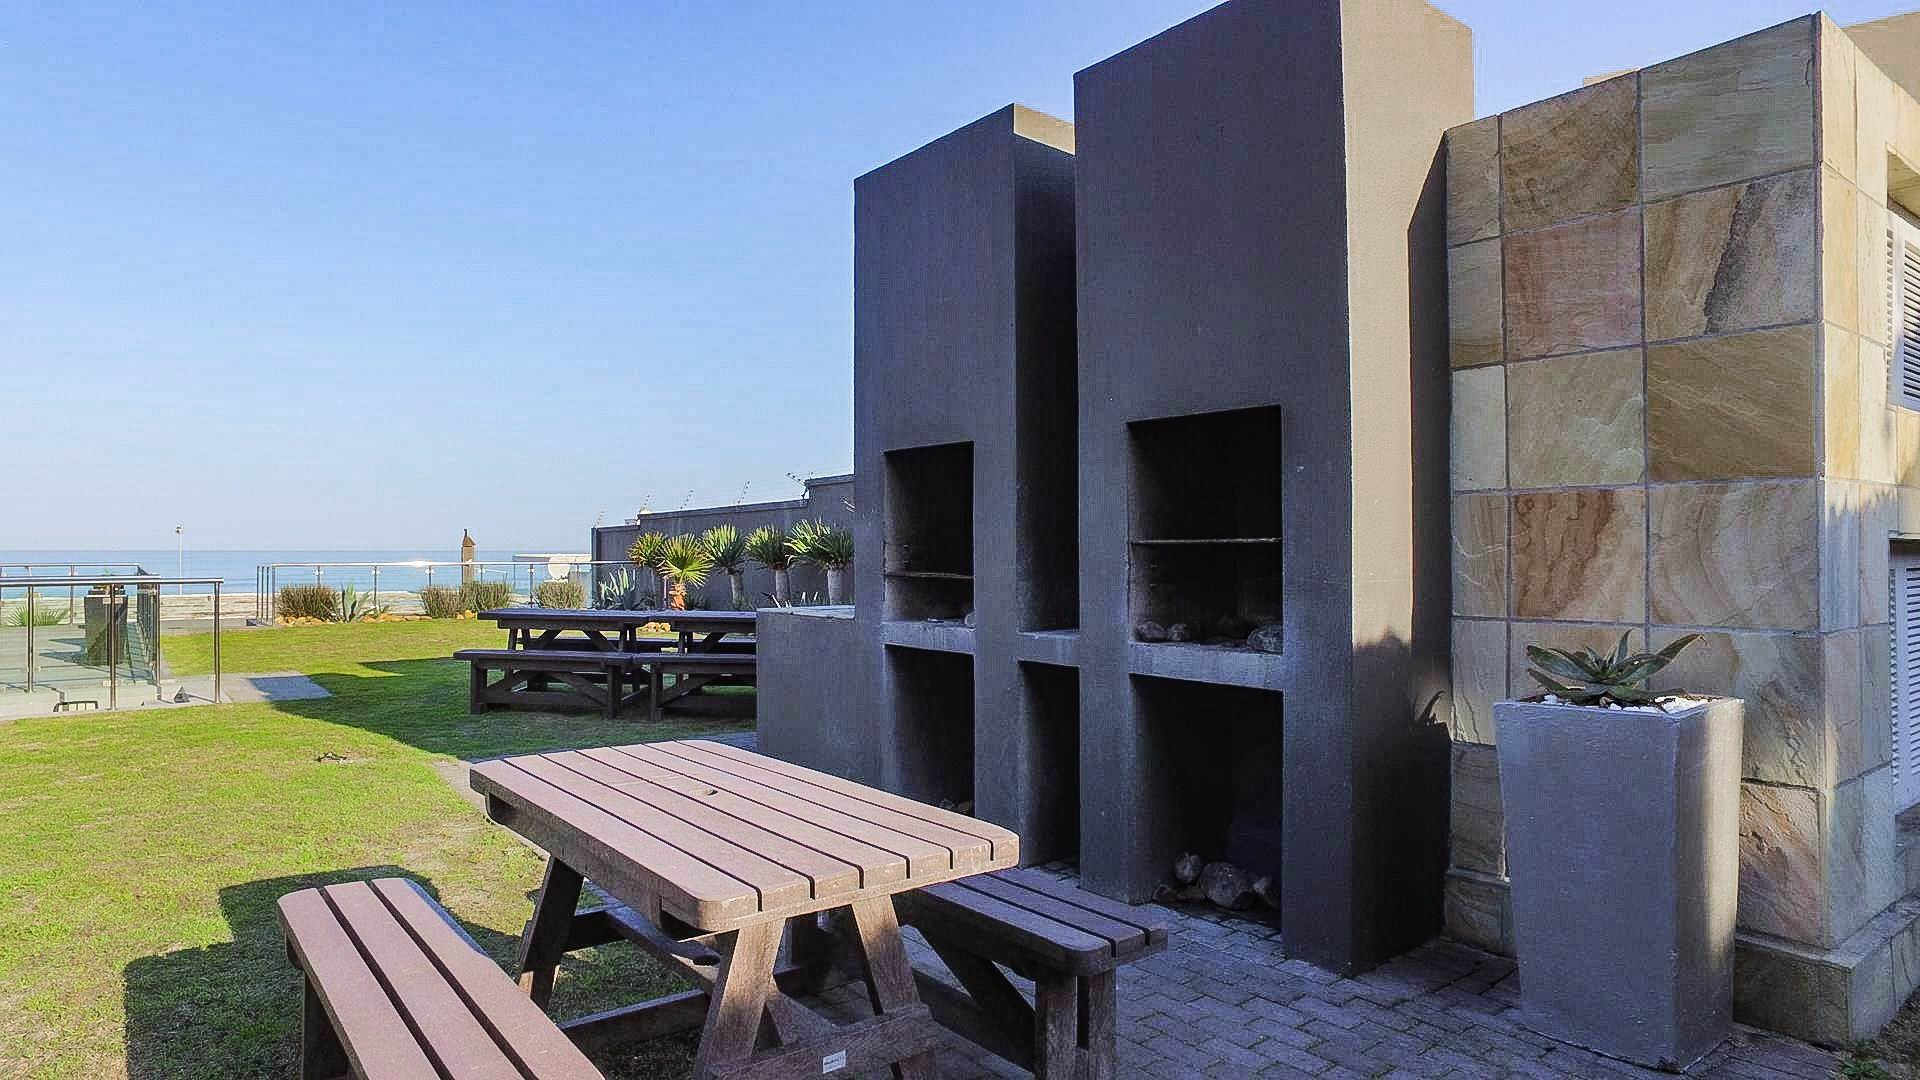 Apartment for sale in table view blaauwberg western cape for r 2846690